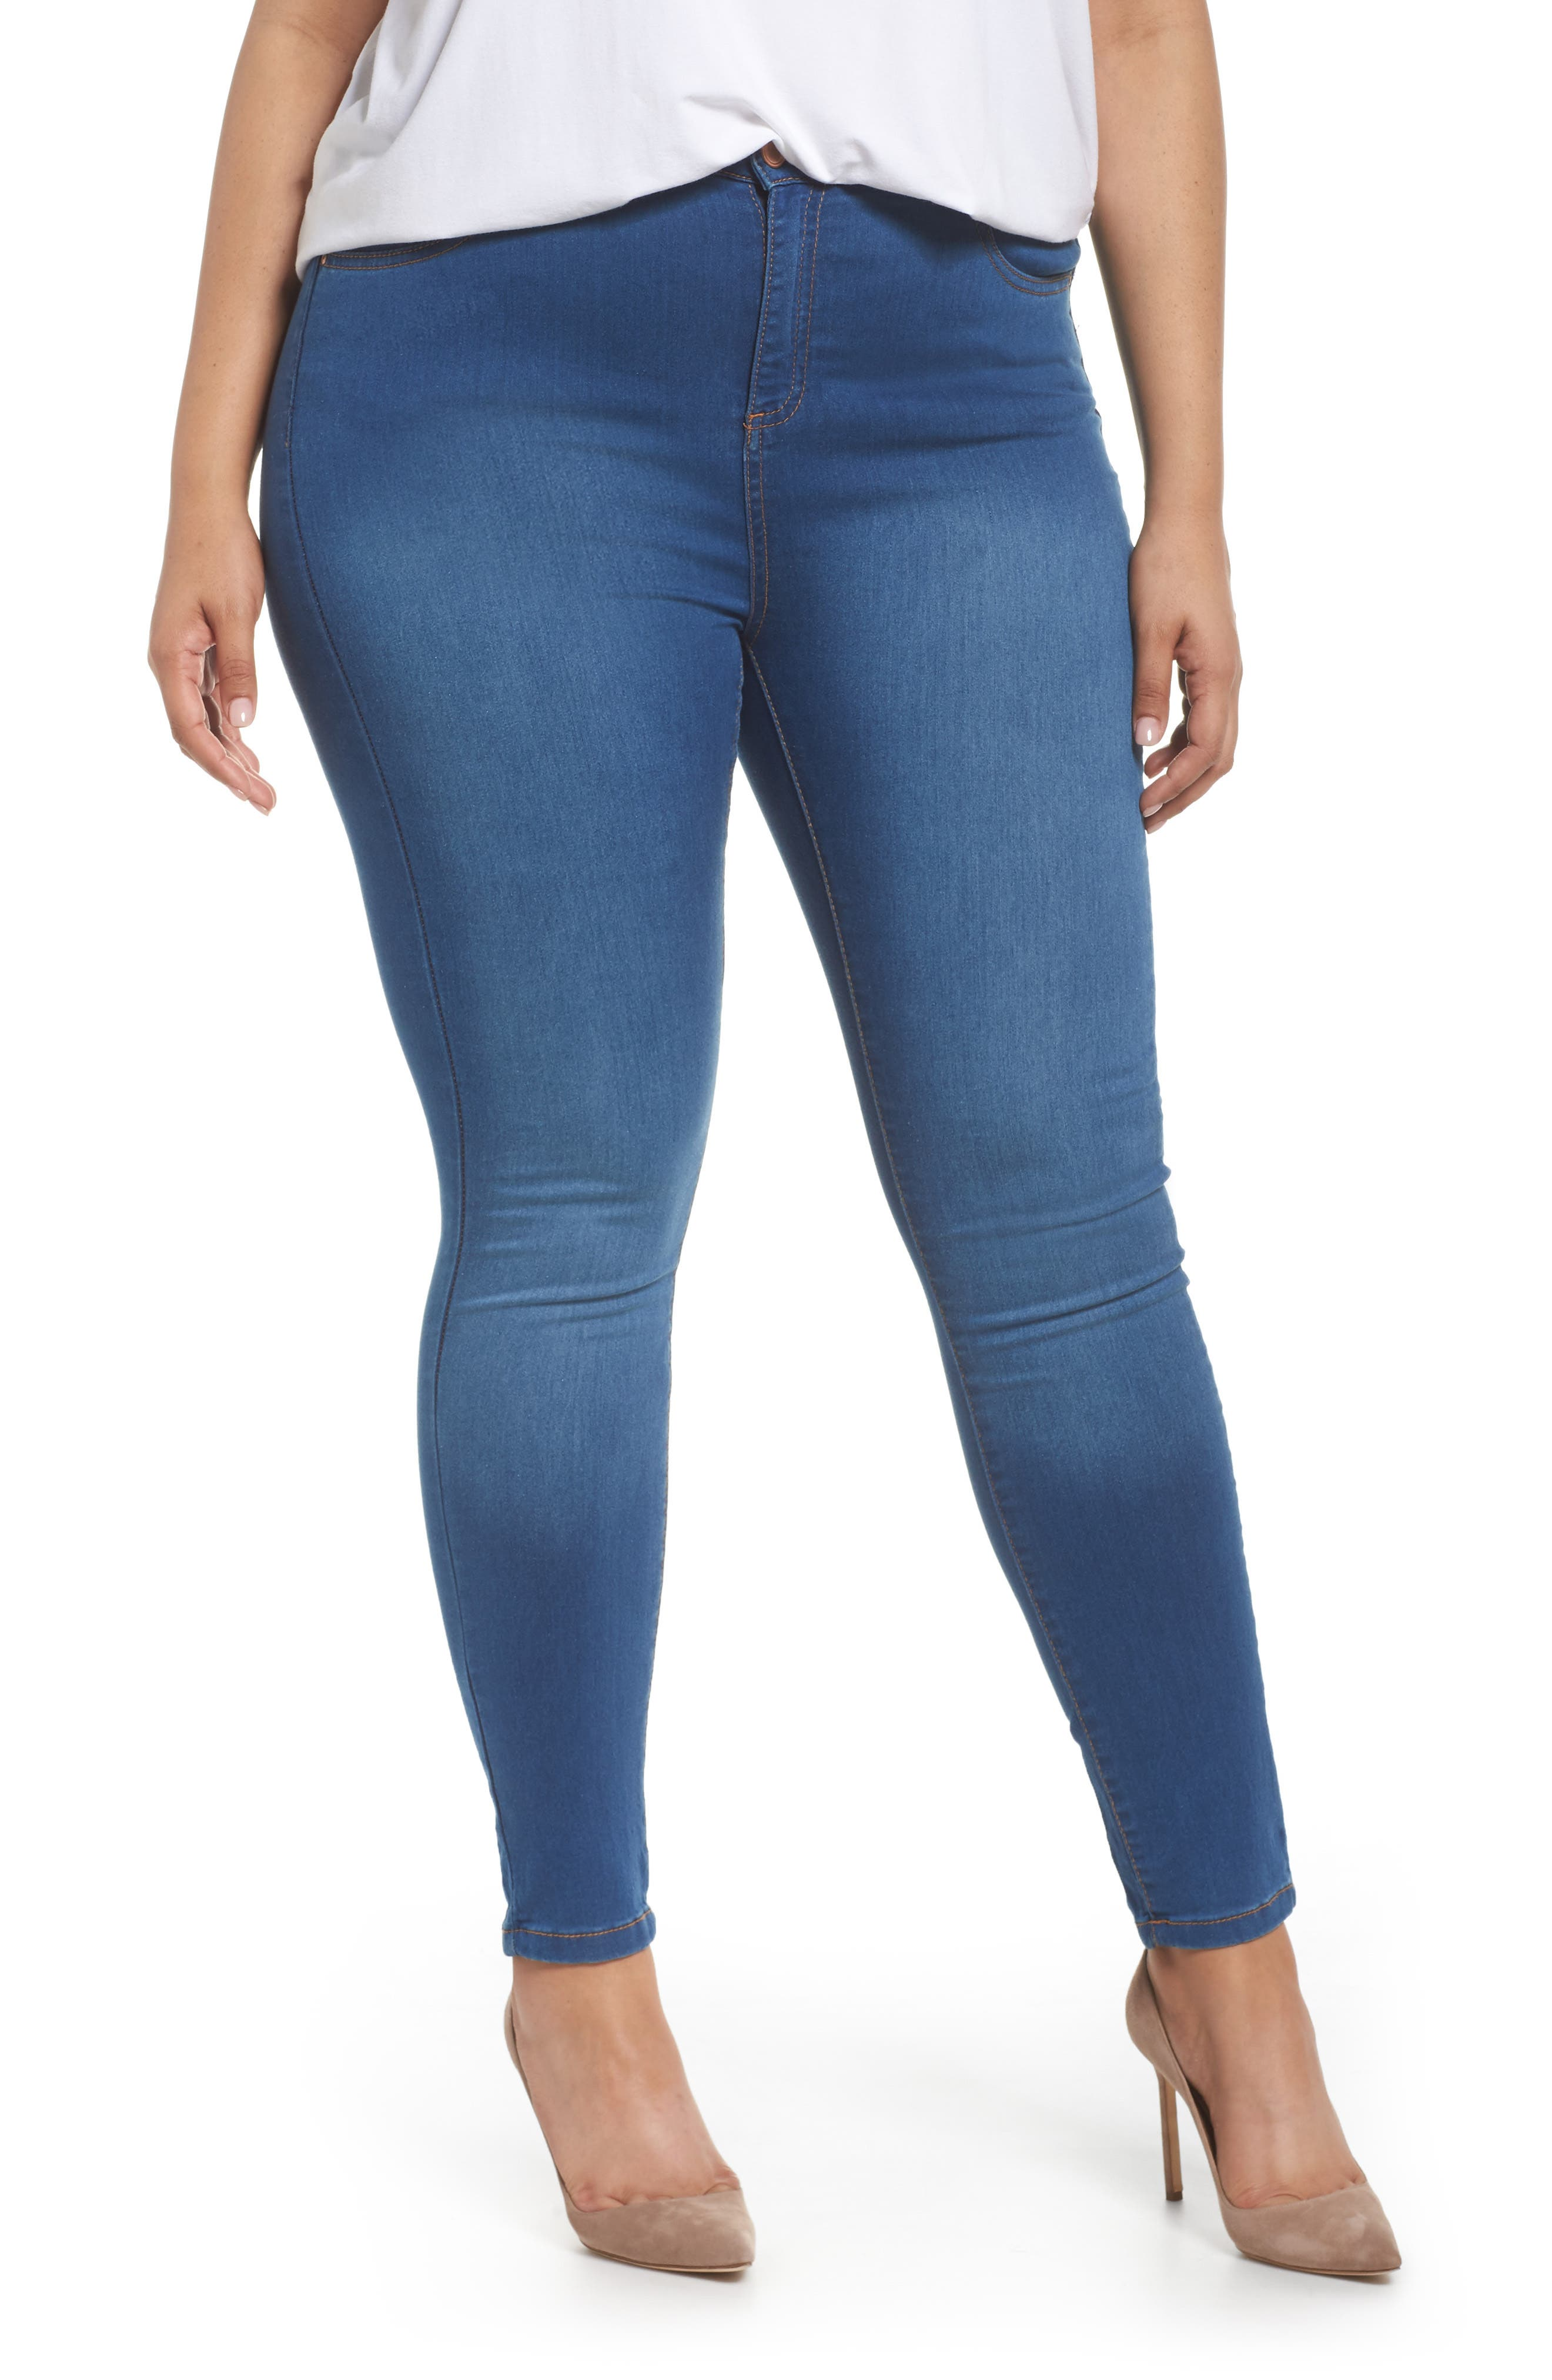 Alternate Image 1 Selected - Evans Skinny Stretch Jeans (Mid Wash) (Plus Size)